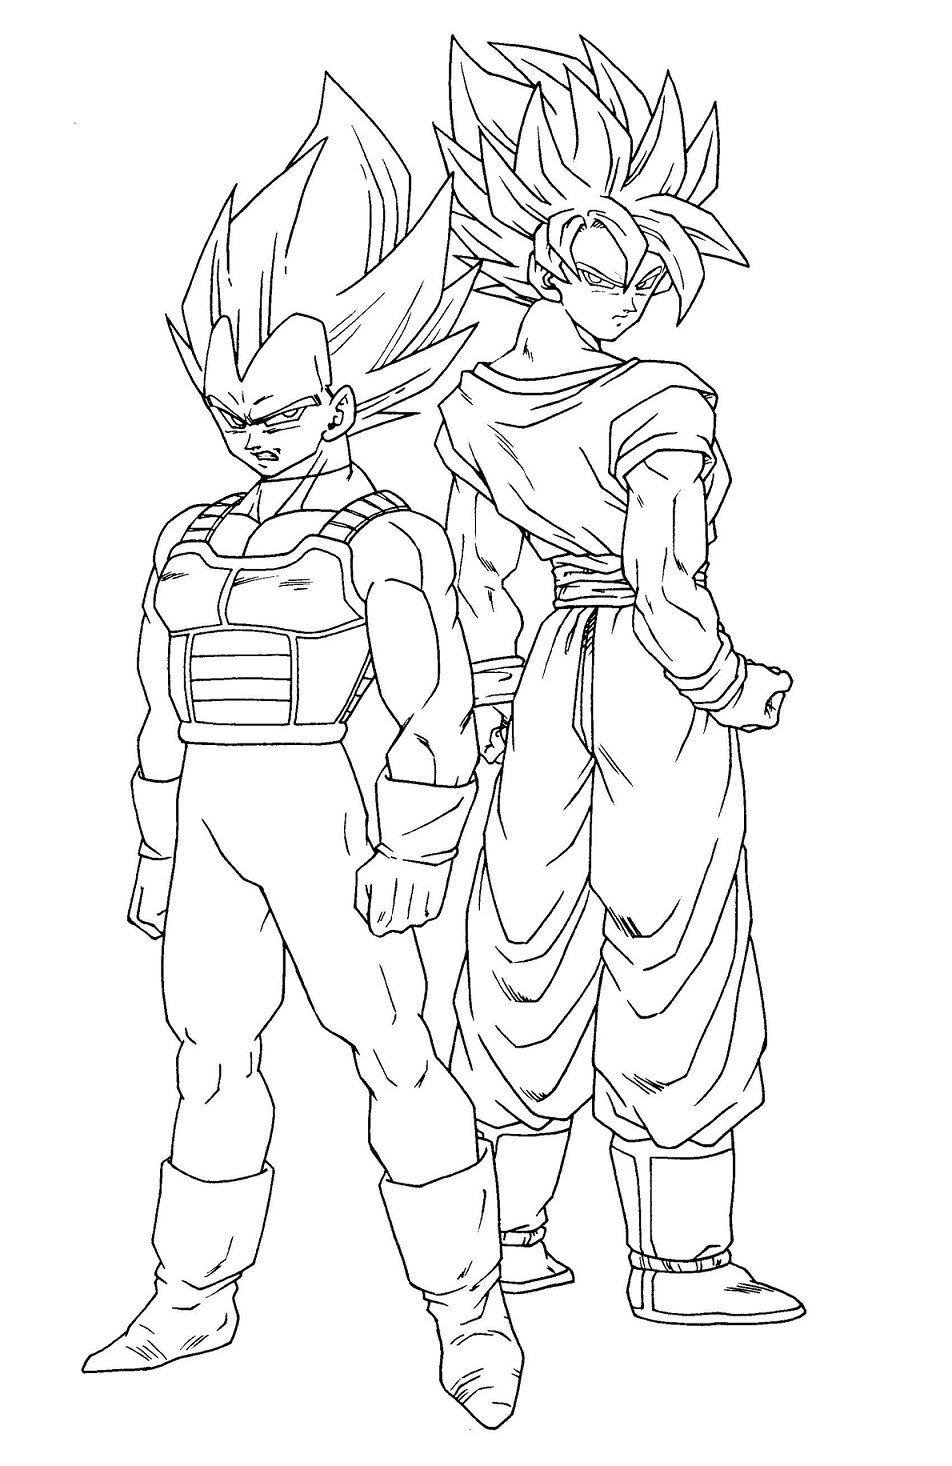 Awesome Goku And Vegeta Coloring Page Free Printable Coloring Pages For Kids Coloring Home In 2021 Super Coloring Pages Coloring Pages Belle Coloring Pages